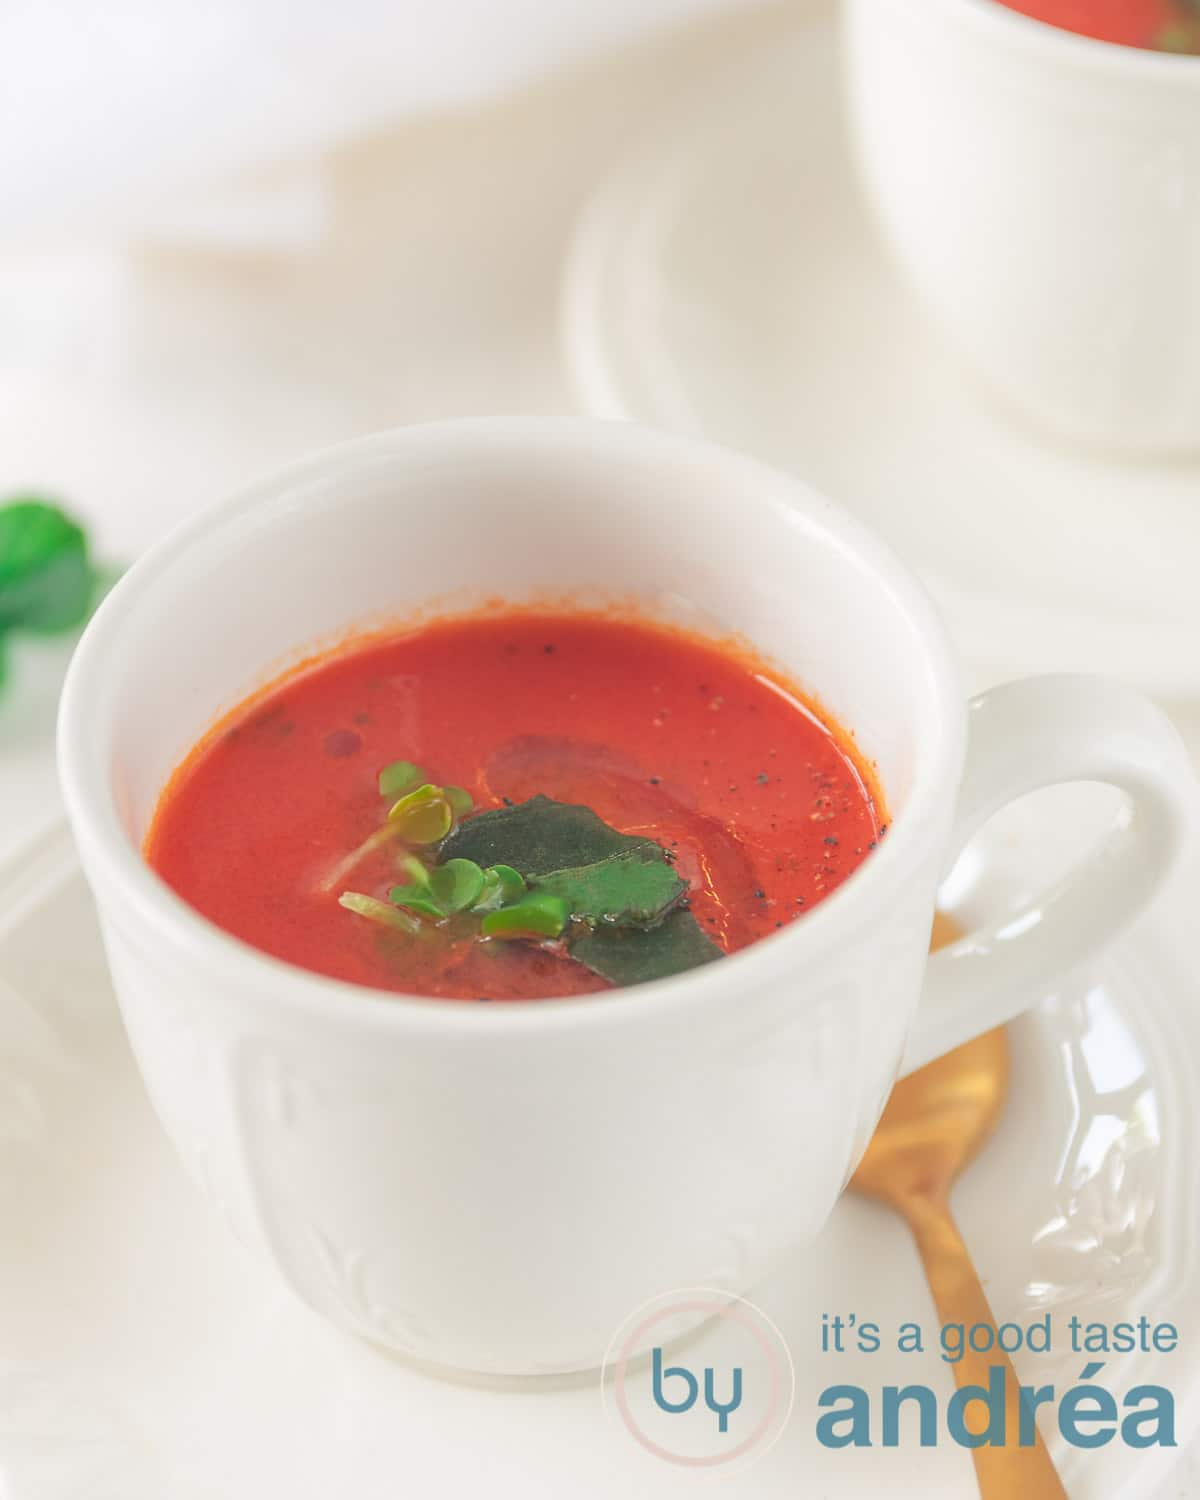 A cup with a vegan, homemade tomato suop